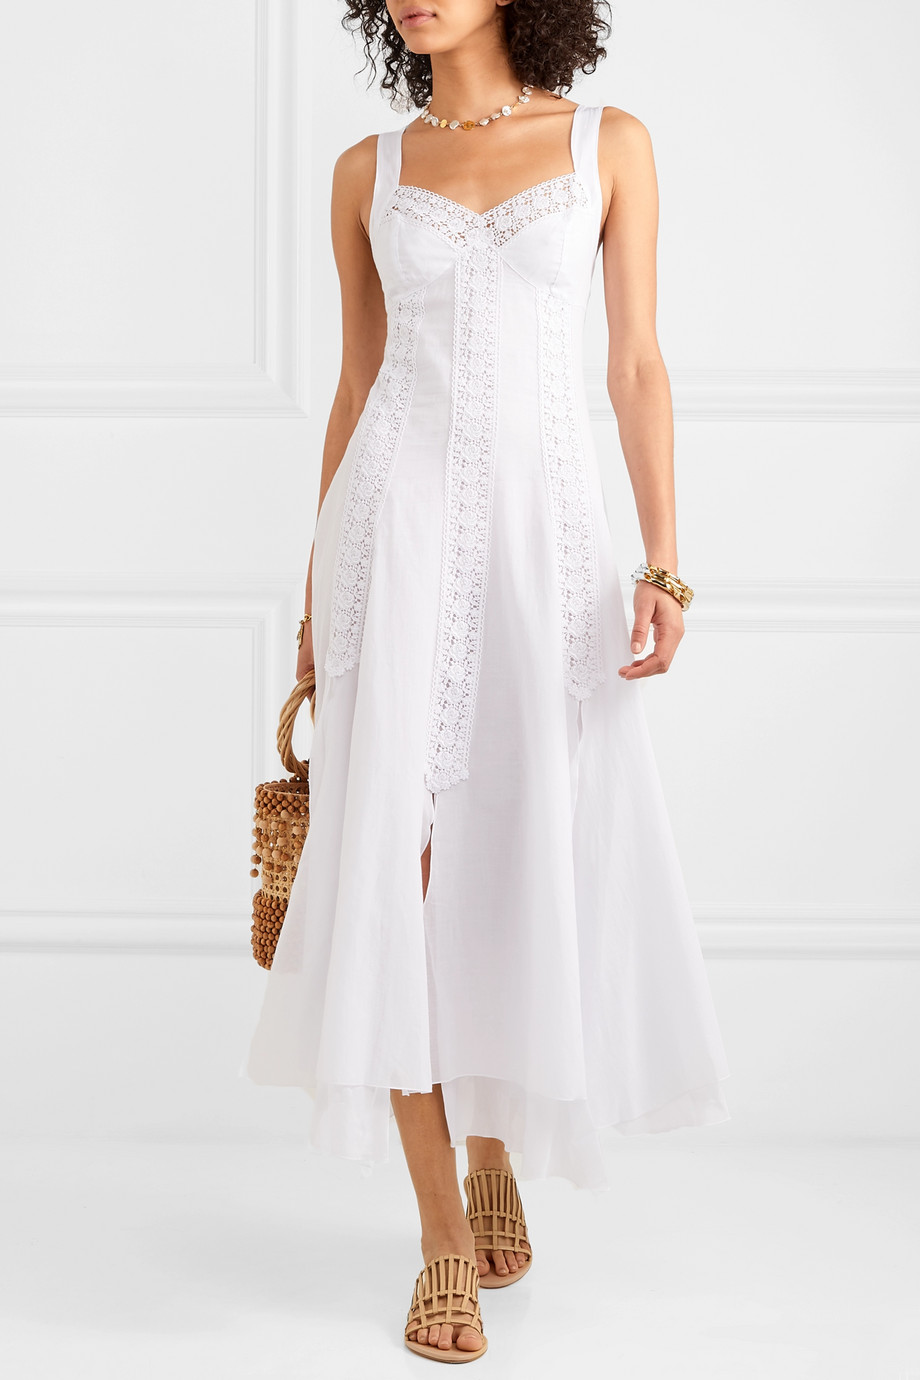 Charo Ruiz Heart crocheted lace-paneled cotton-blend voile dress